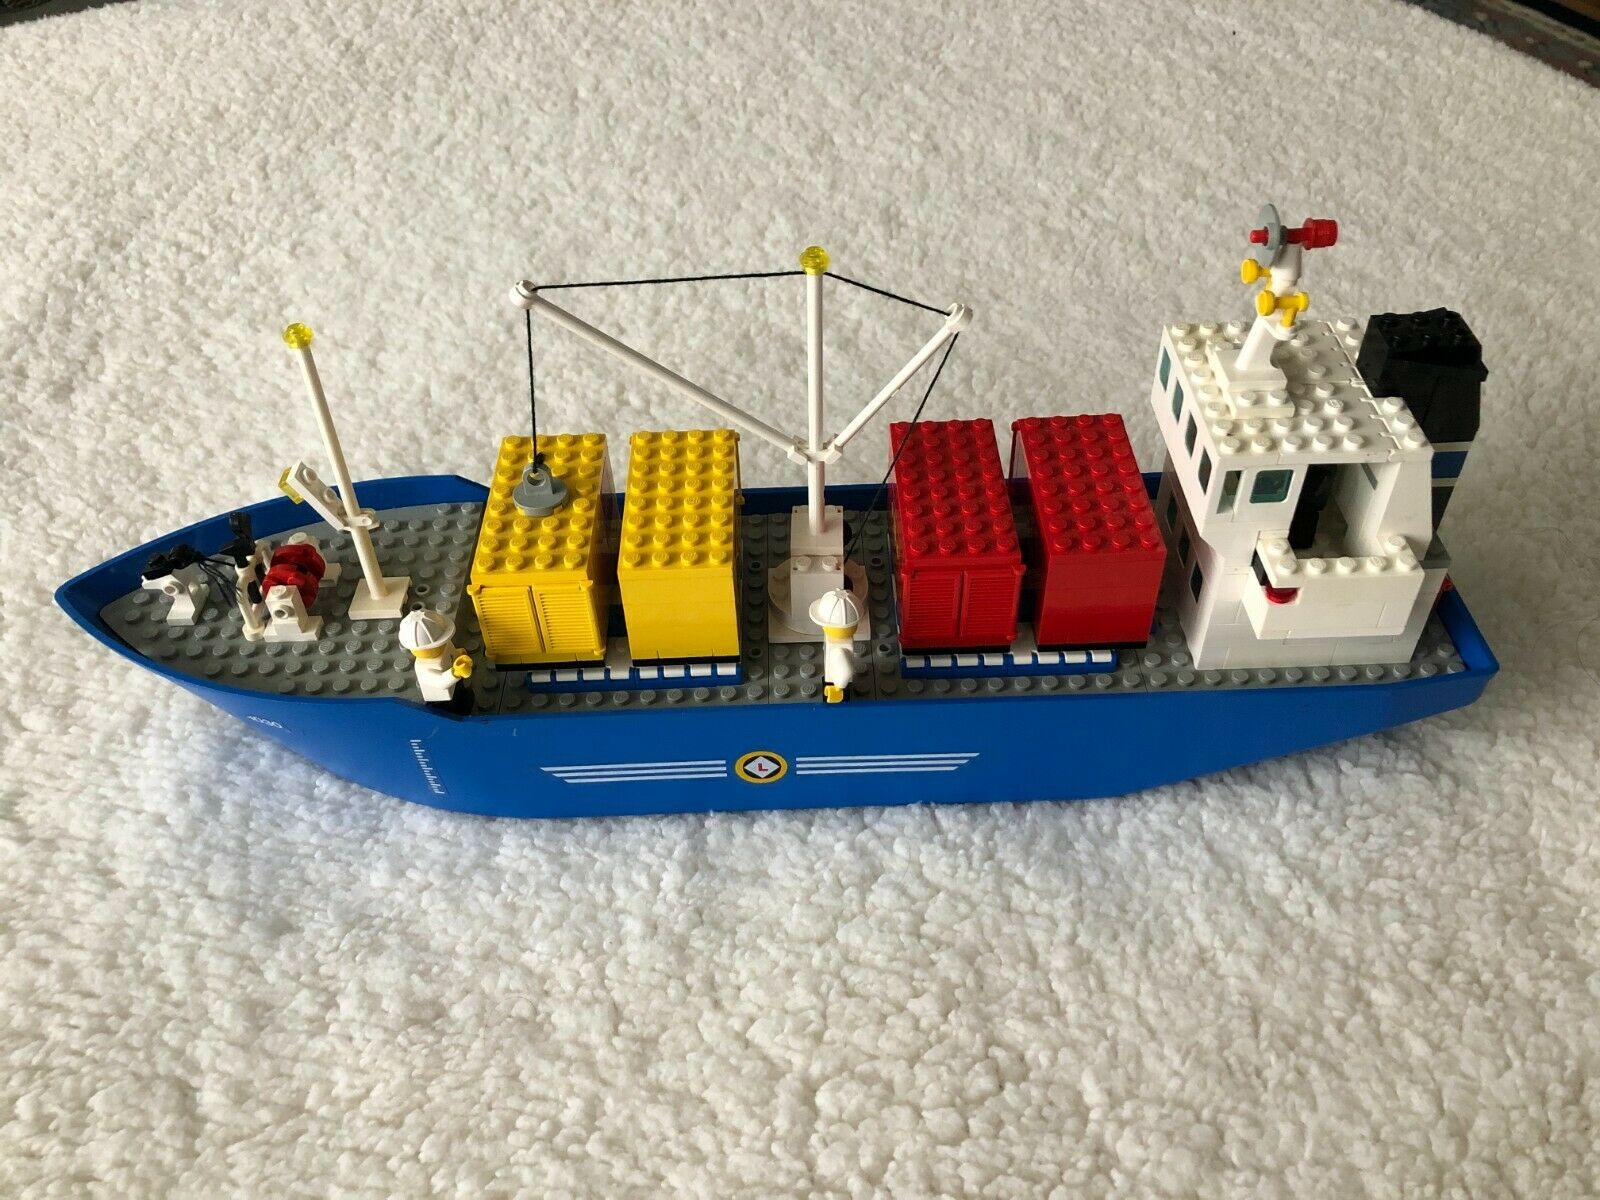 Lego 4030 Cargo Carrier Complete